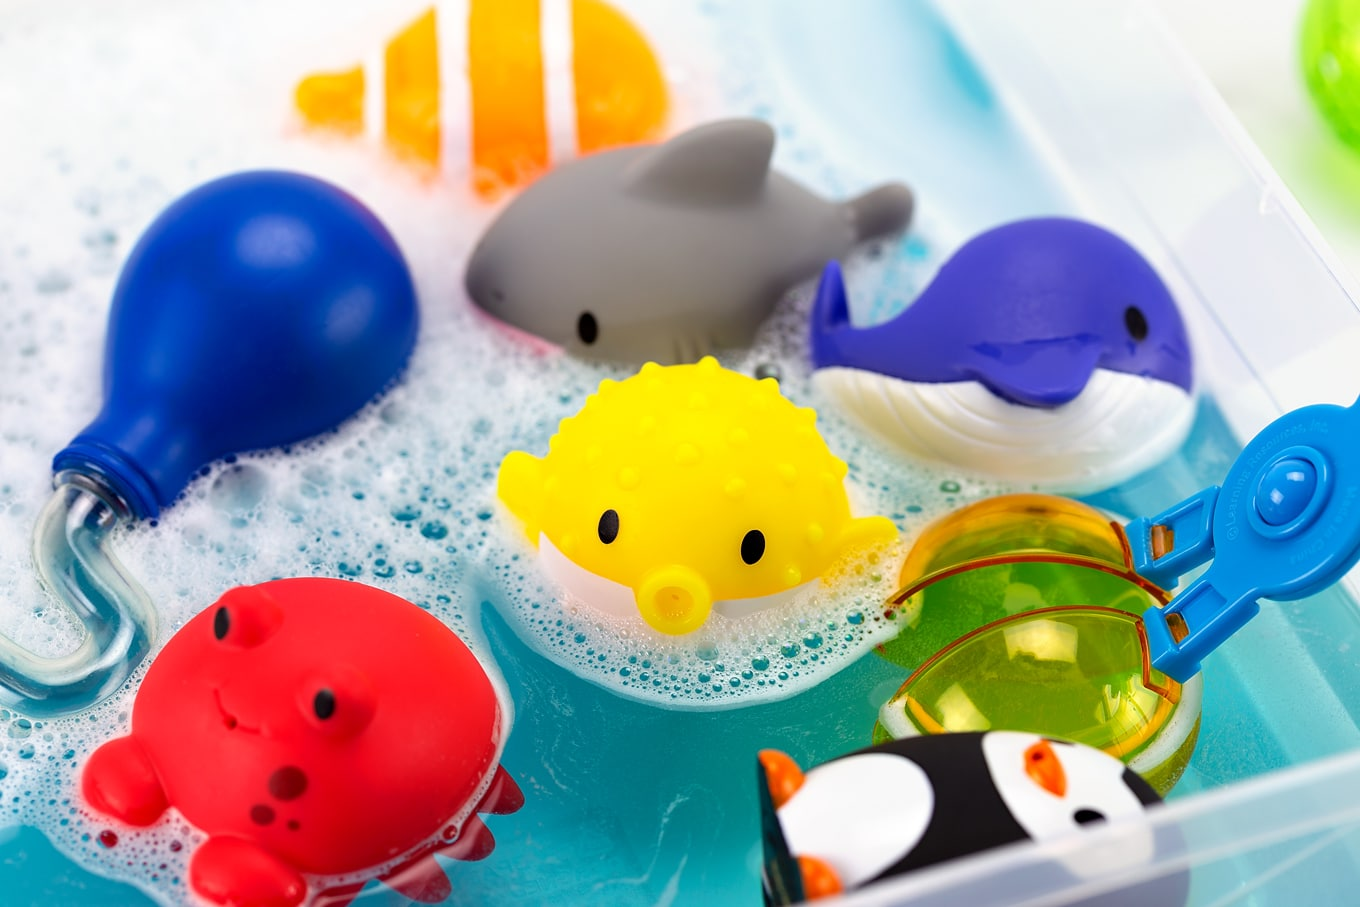 Colorful Bathtub Squirters in a Bubbly Water Sensory Bin